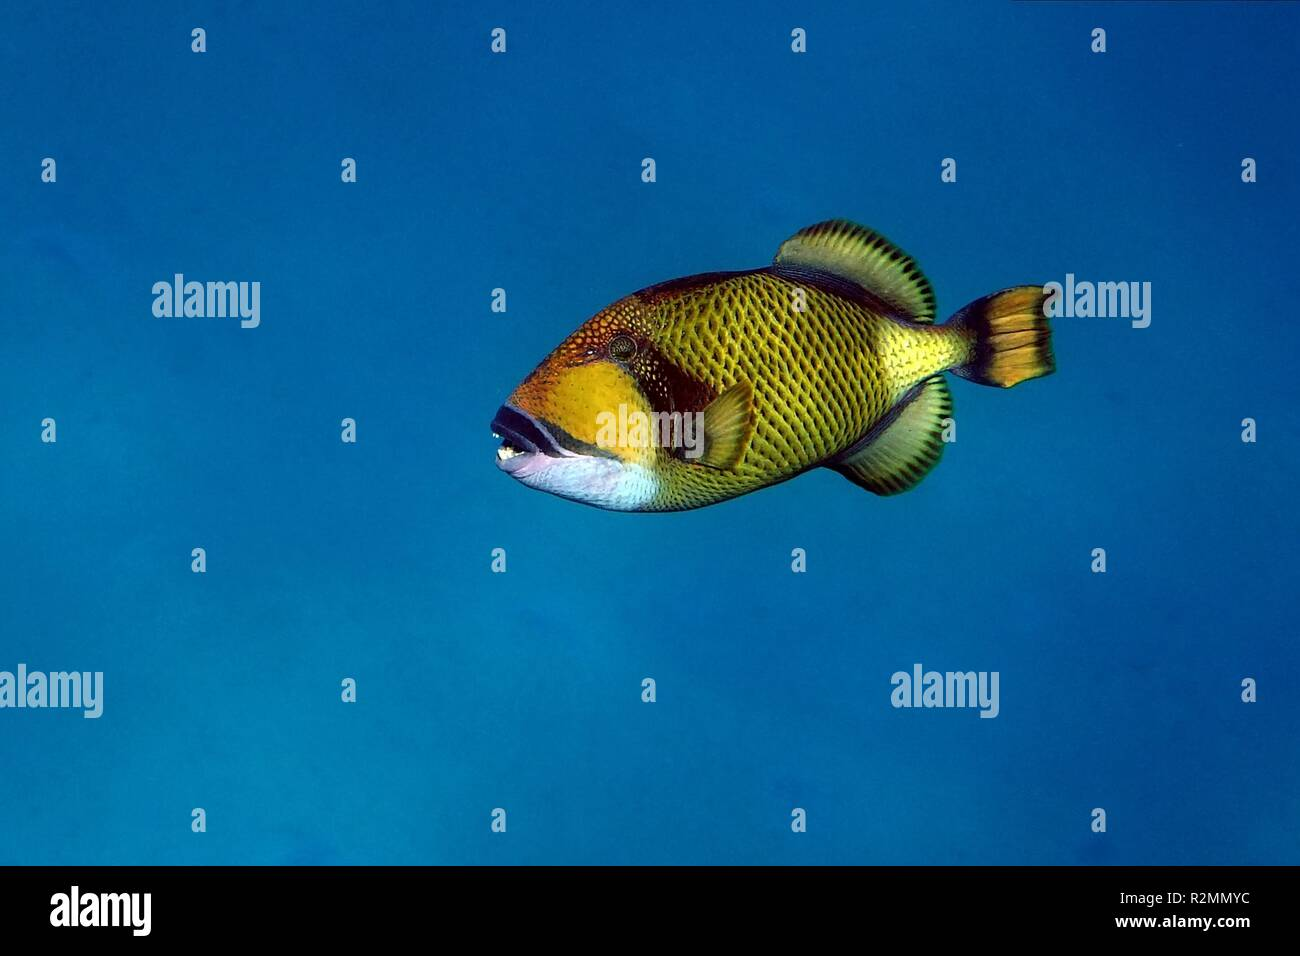 giant triggerfish - Stock Image